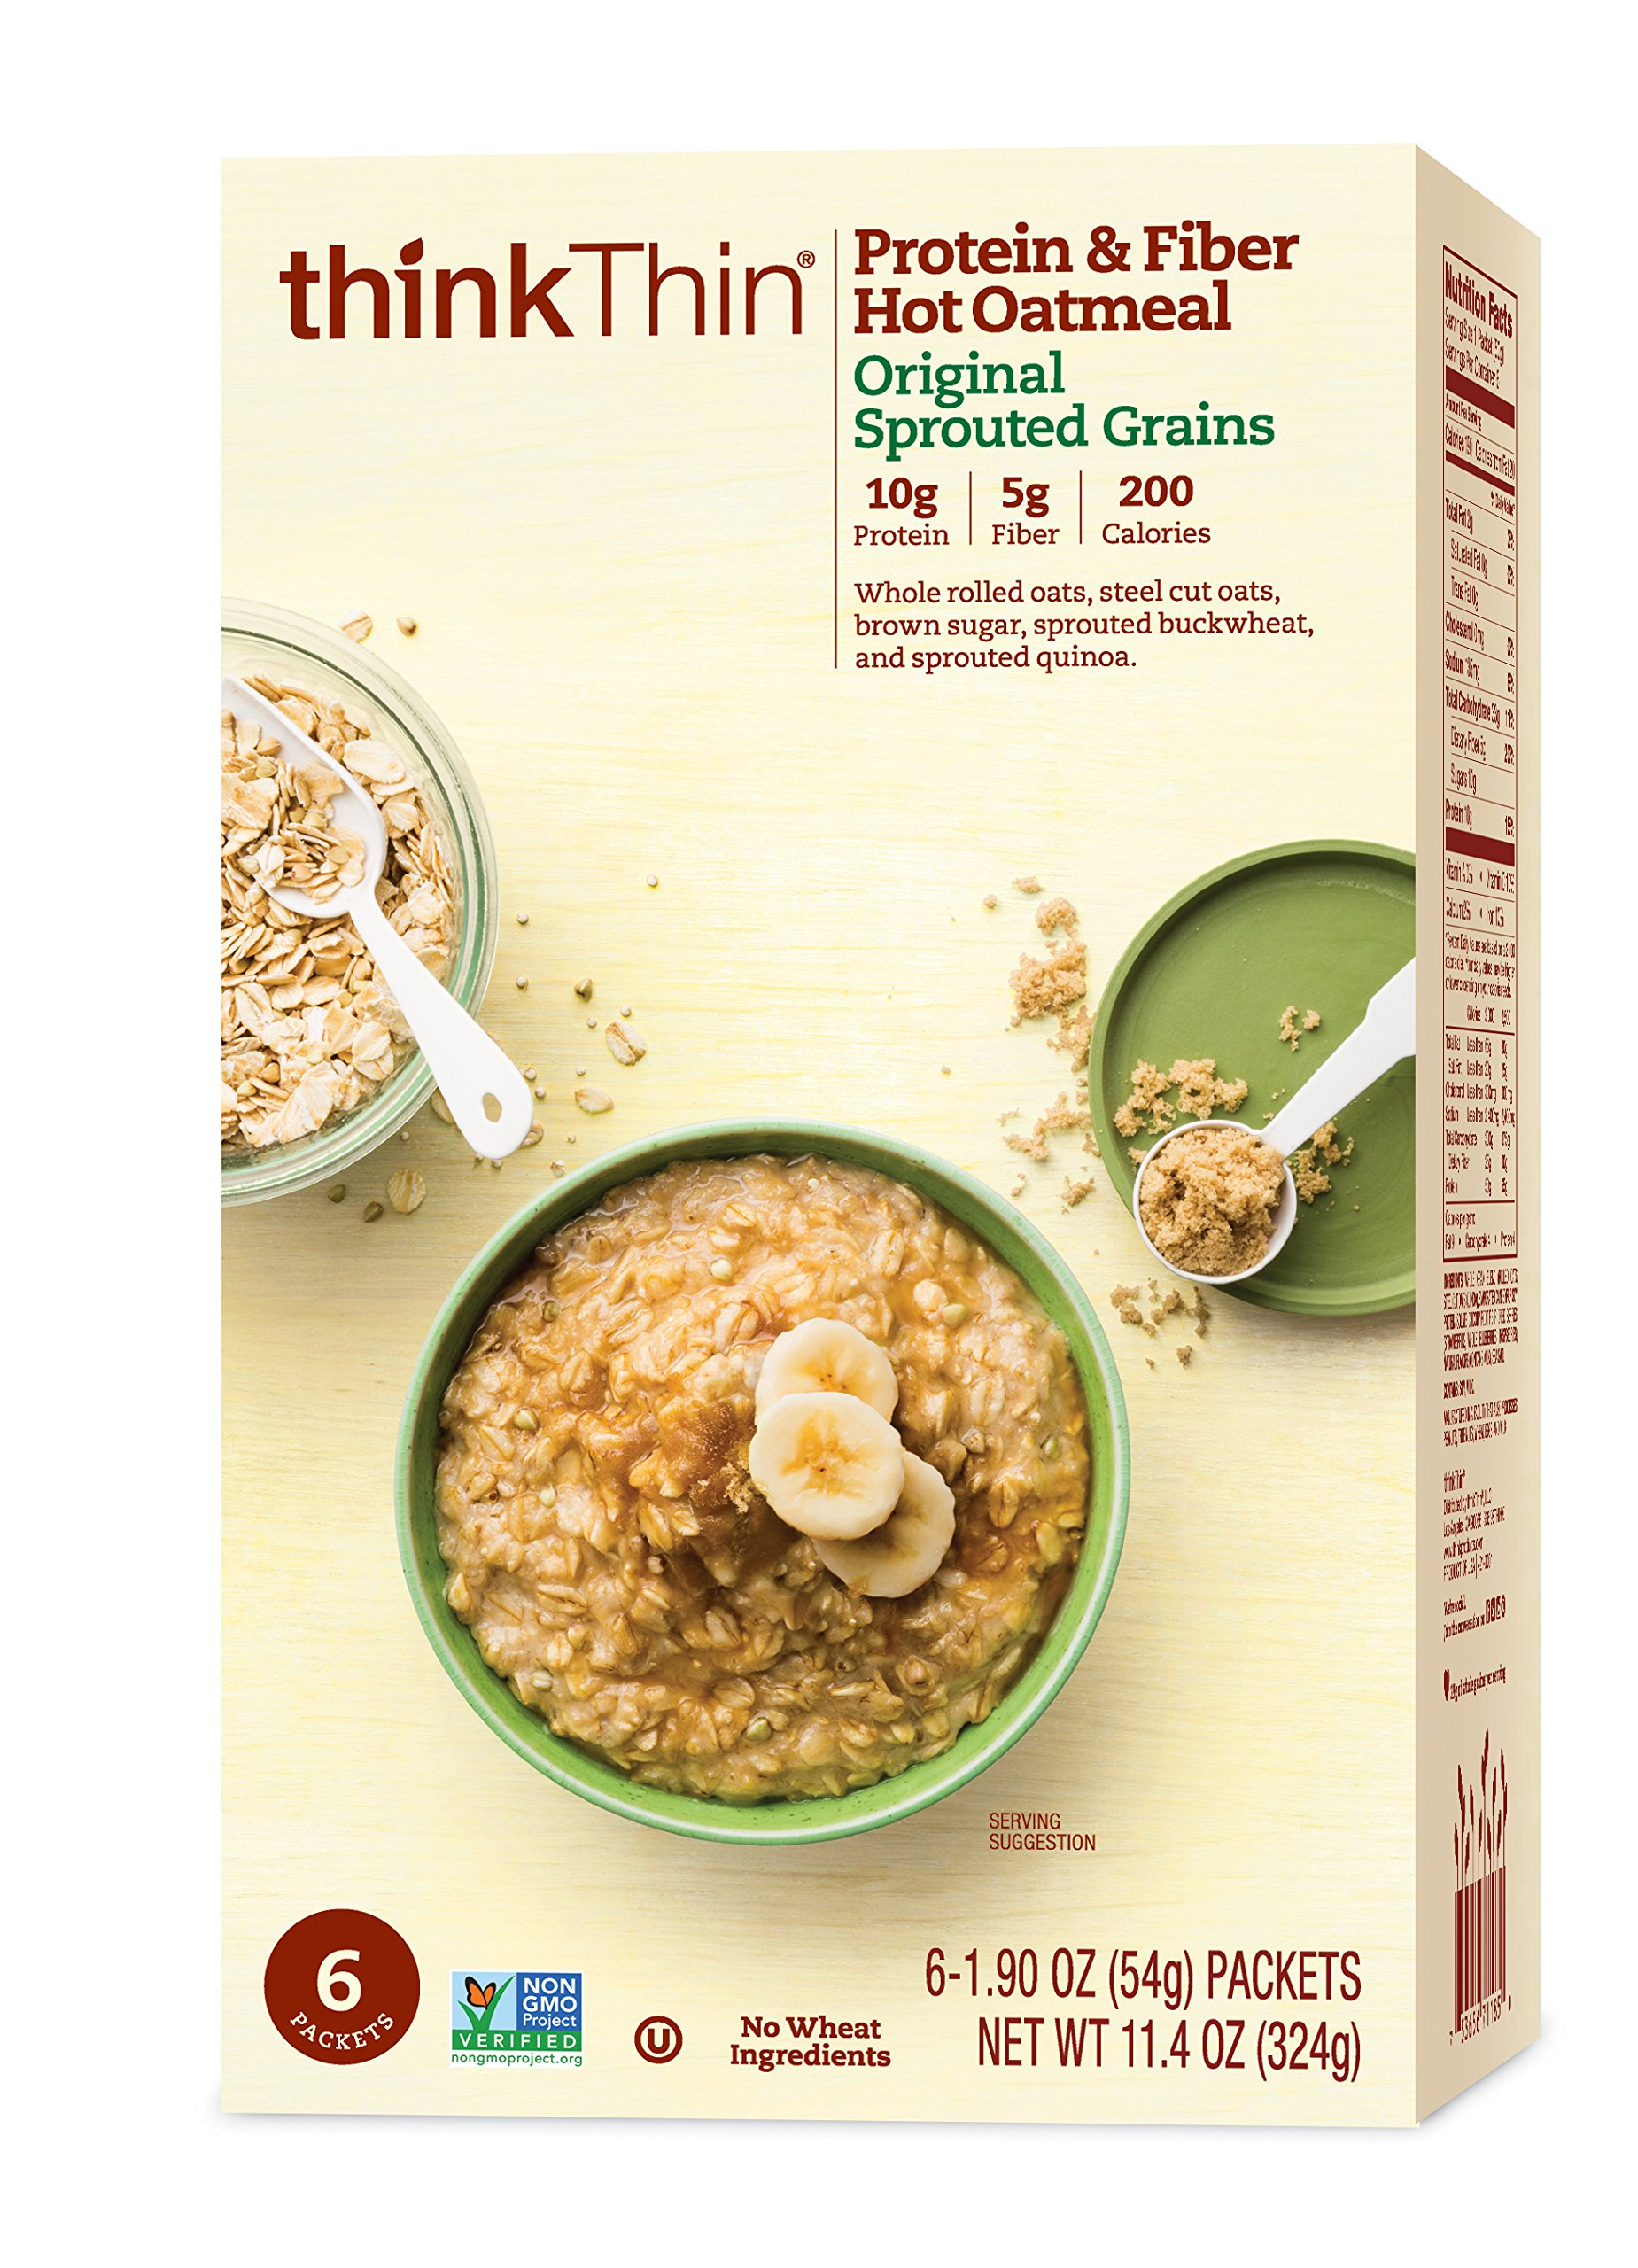 thinkThin Protein & Fiber Hot Oatmeal, Original Sprouted Grains, 6-1.90 oz Packets per Box (12 Boxes)